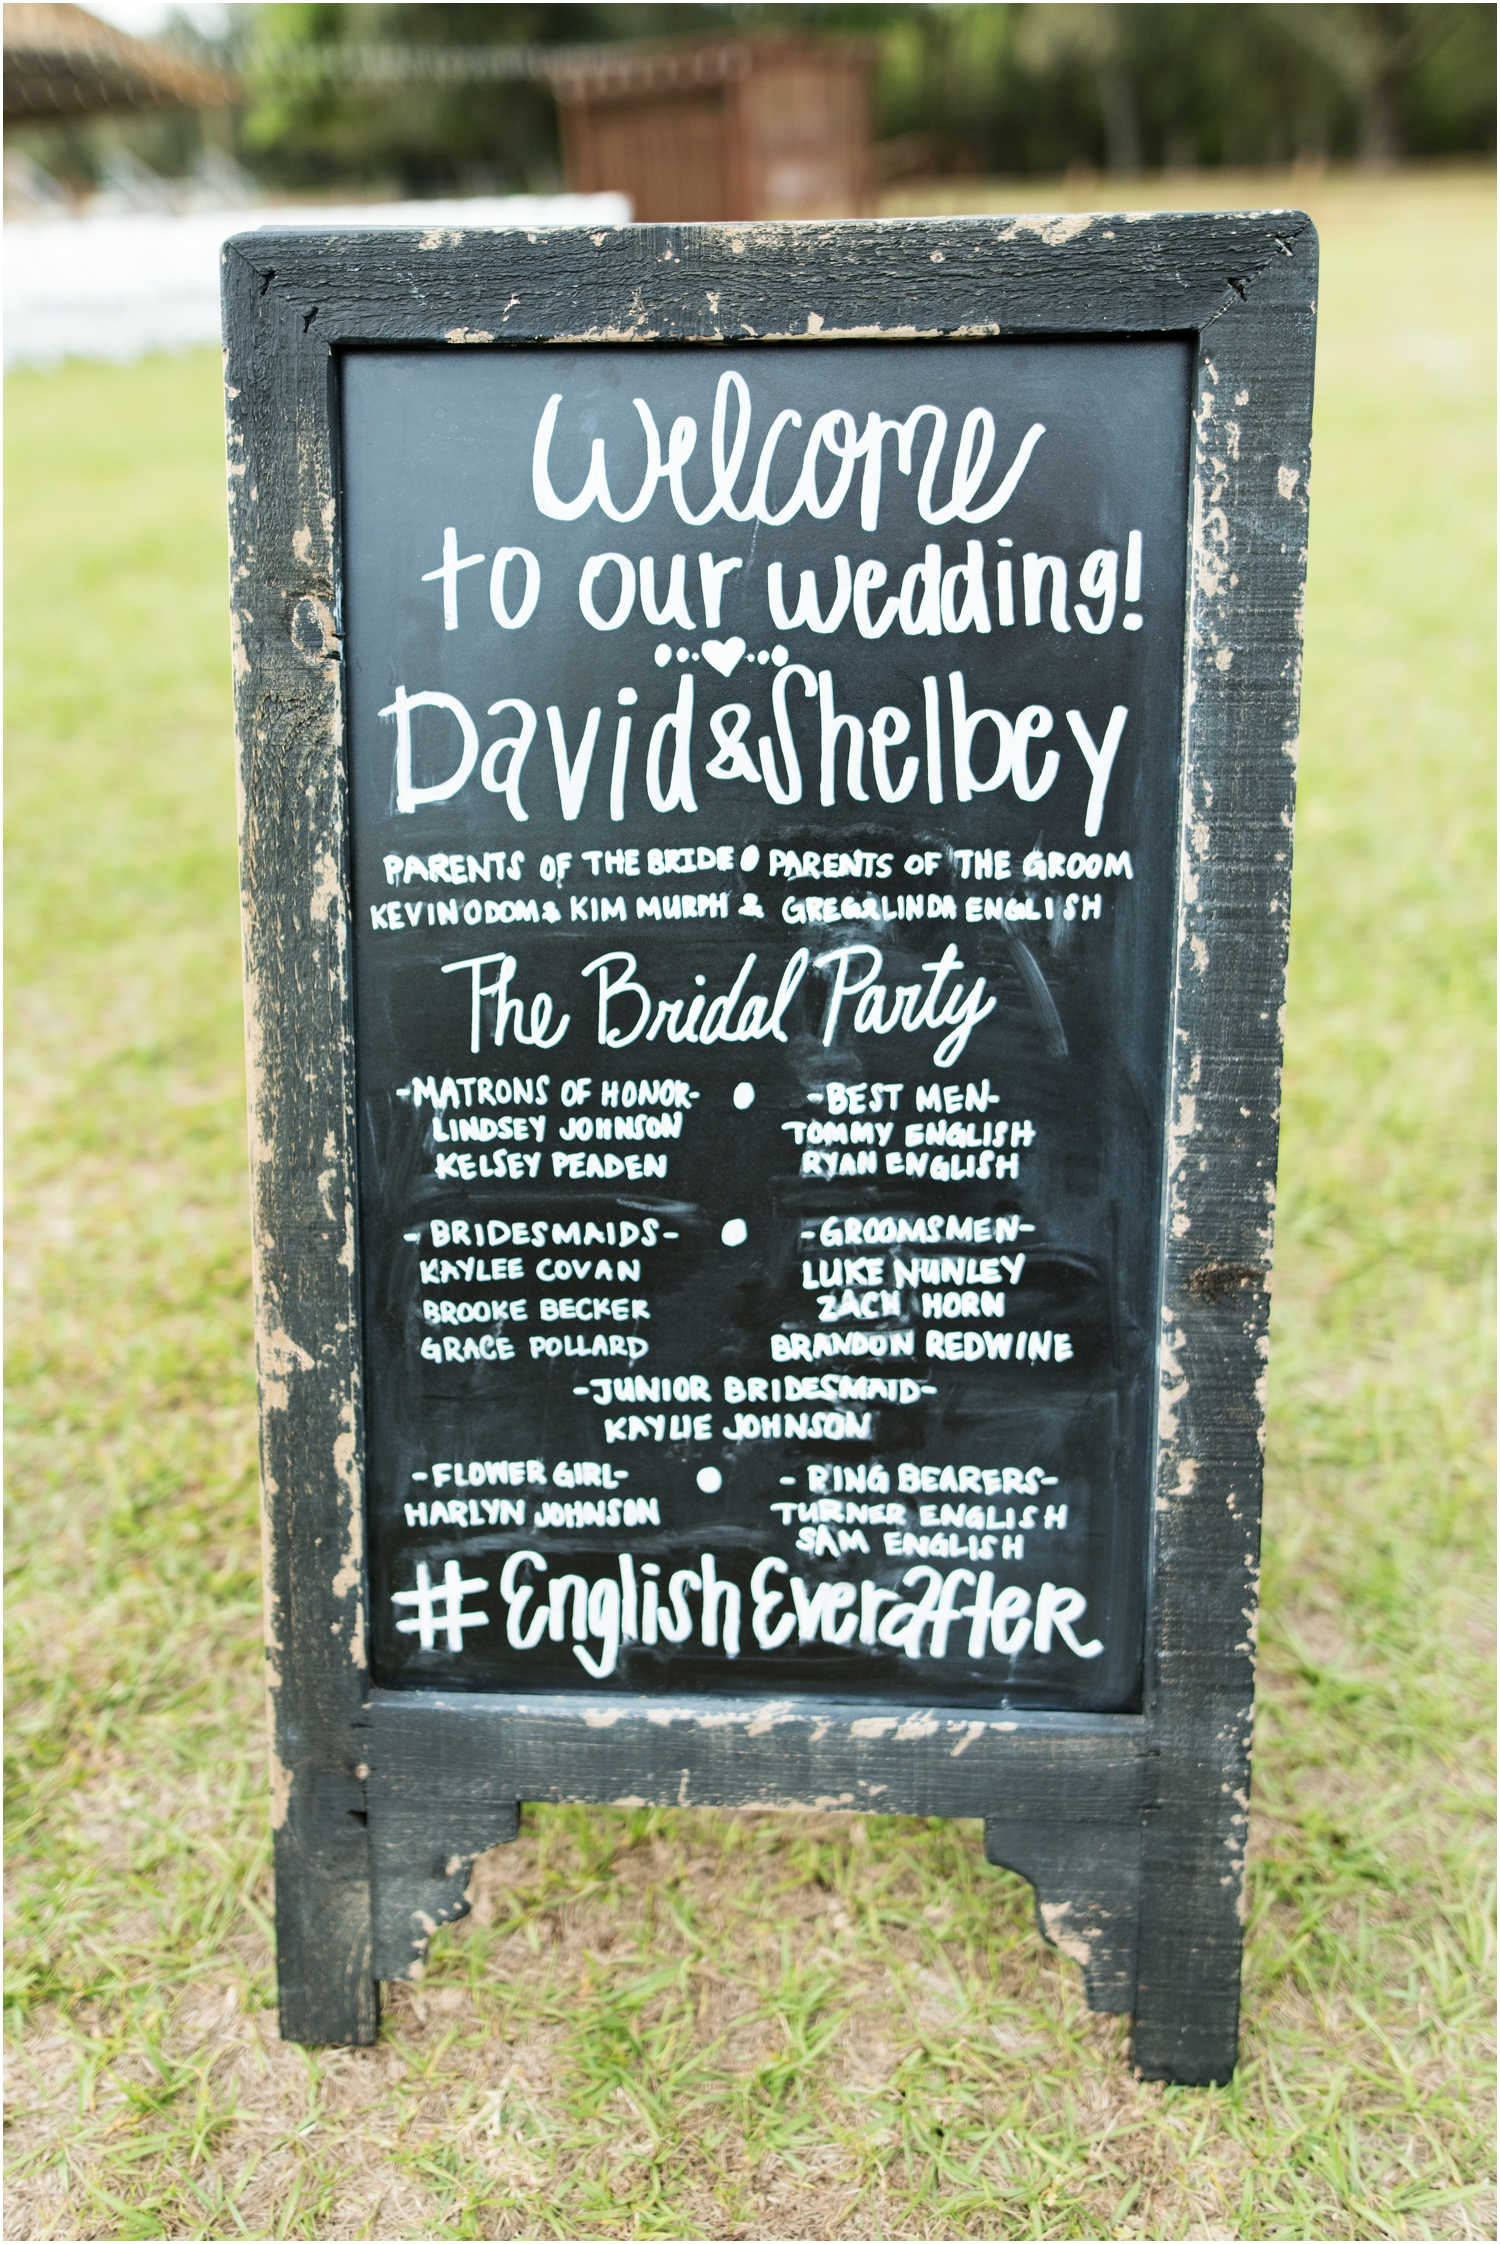 Sowell Farms Milton Florida Rustic Woodsy Barn Wedding Photographer ceremony details chalkboard